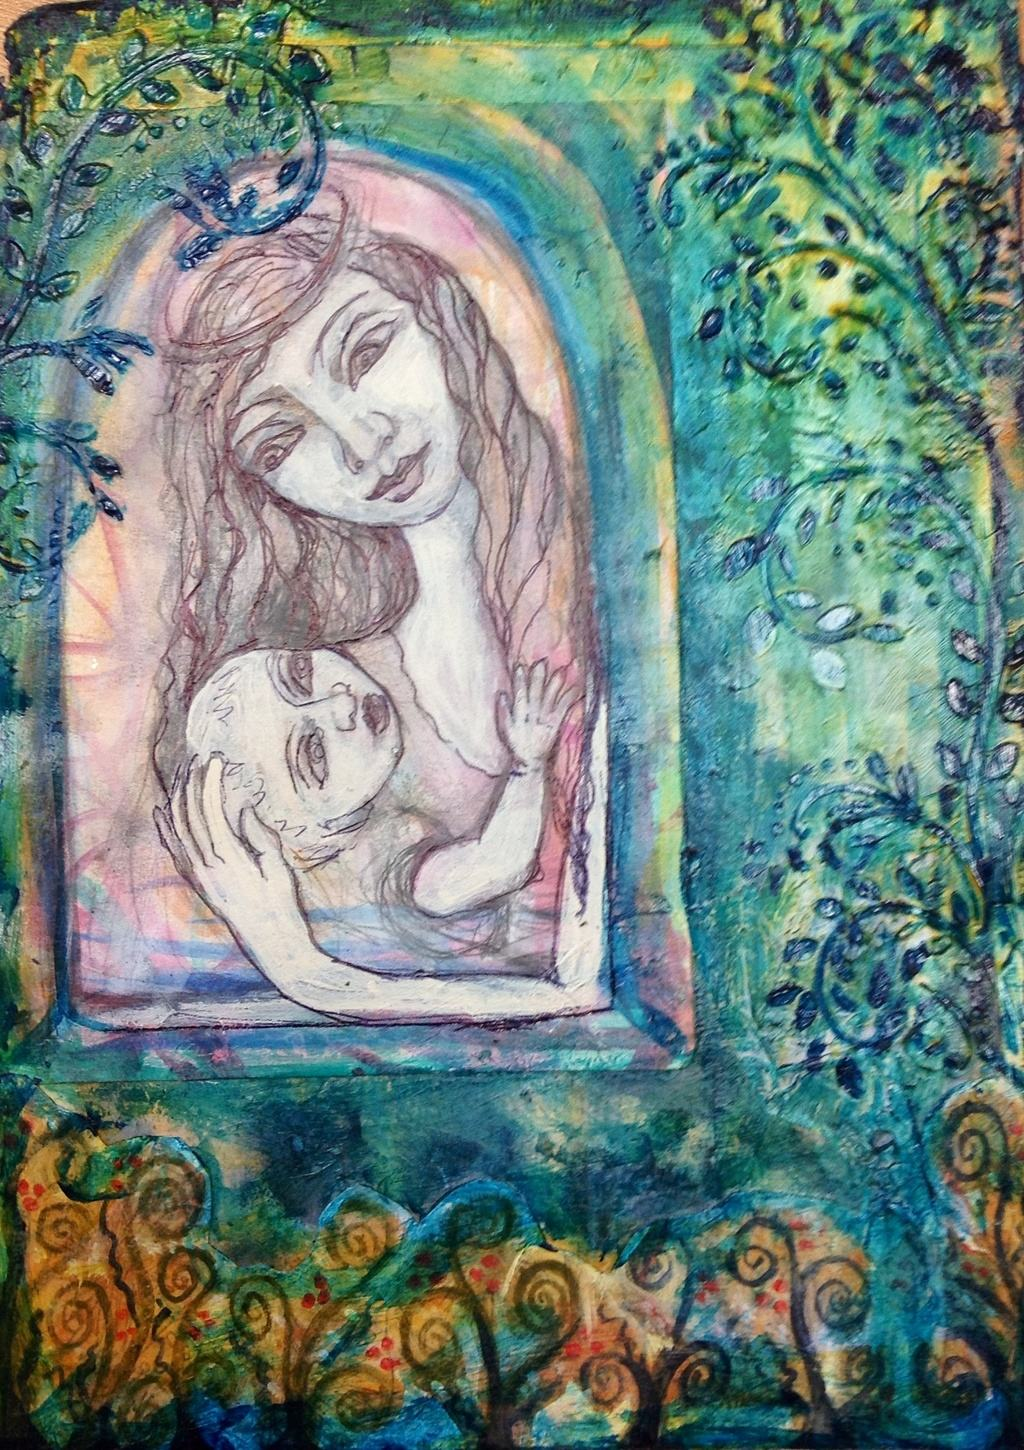 Within the garden window she cradles her.